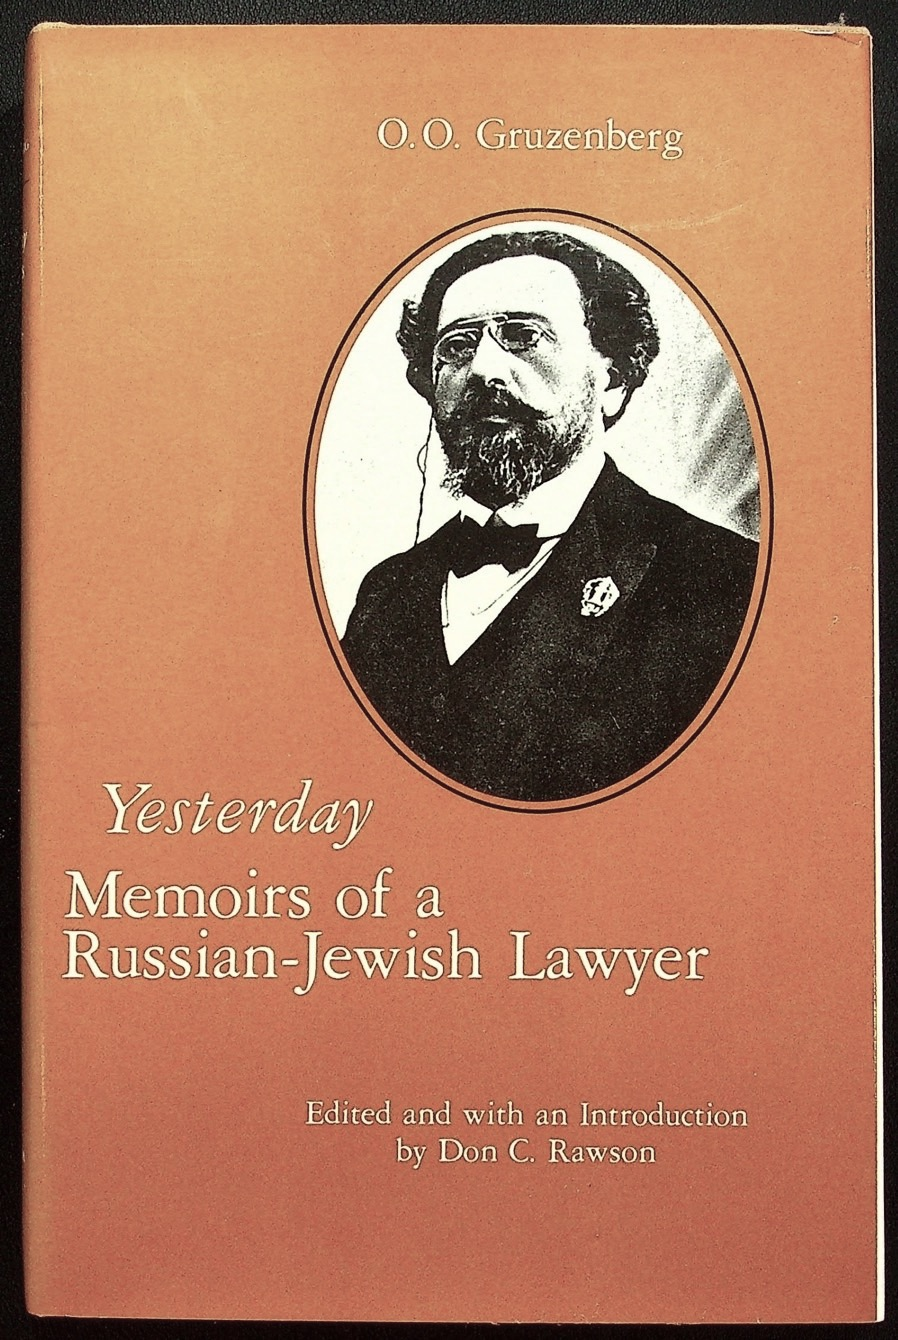 Yesterday: Memoirs of a Russian-Jewish Lawyer. Edited and with an Introduction by Don C. Rawson. O. O. GRUZENBERG, Oskar Osipovich.